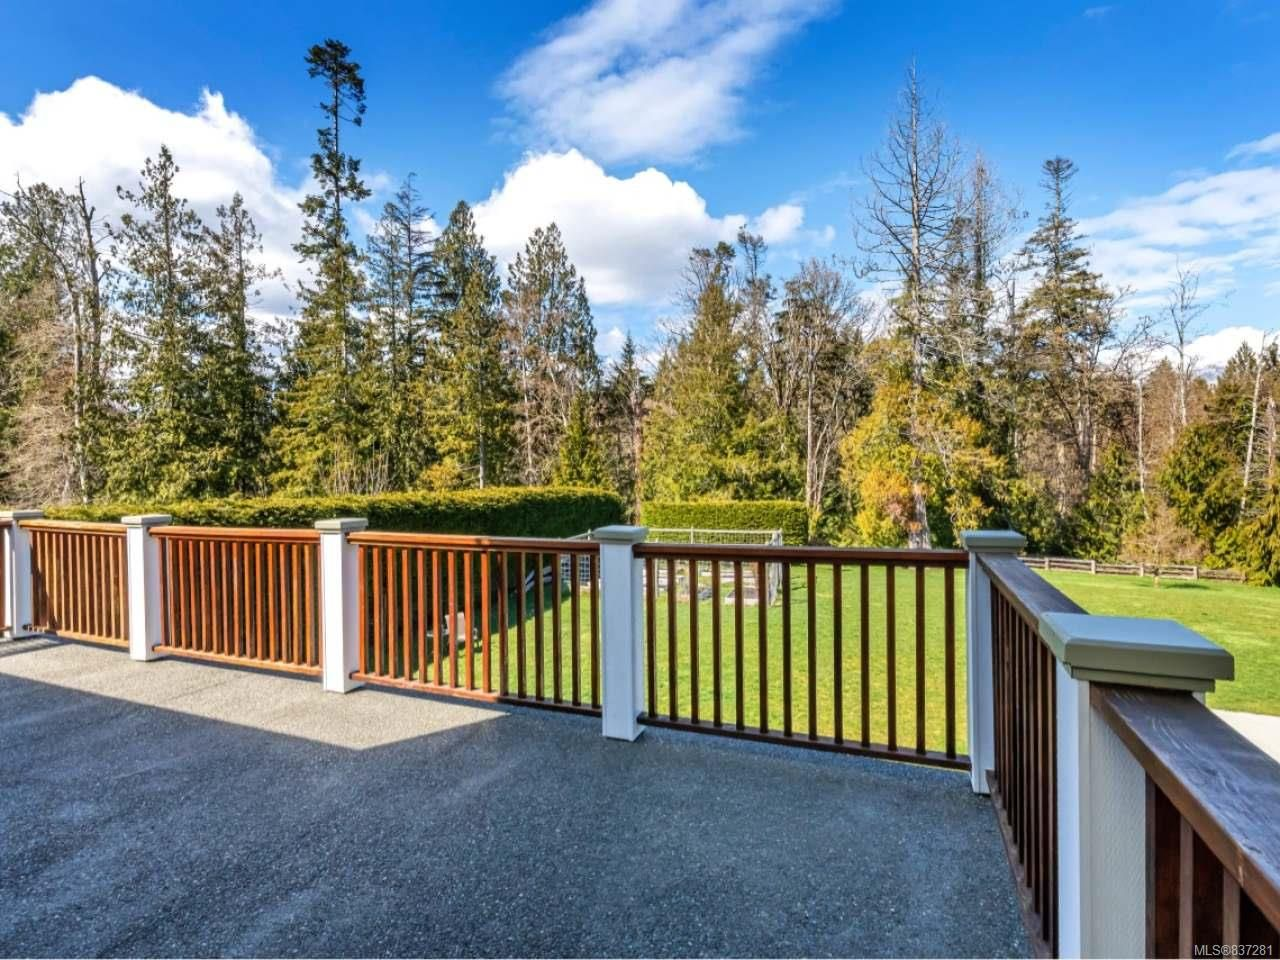 Photo 41: Photos: 925 Lilmac Rd in MILL BAY: ML Mill Bay House for sale (Malahat & Area)  : MLS®# 837281